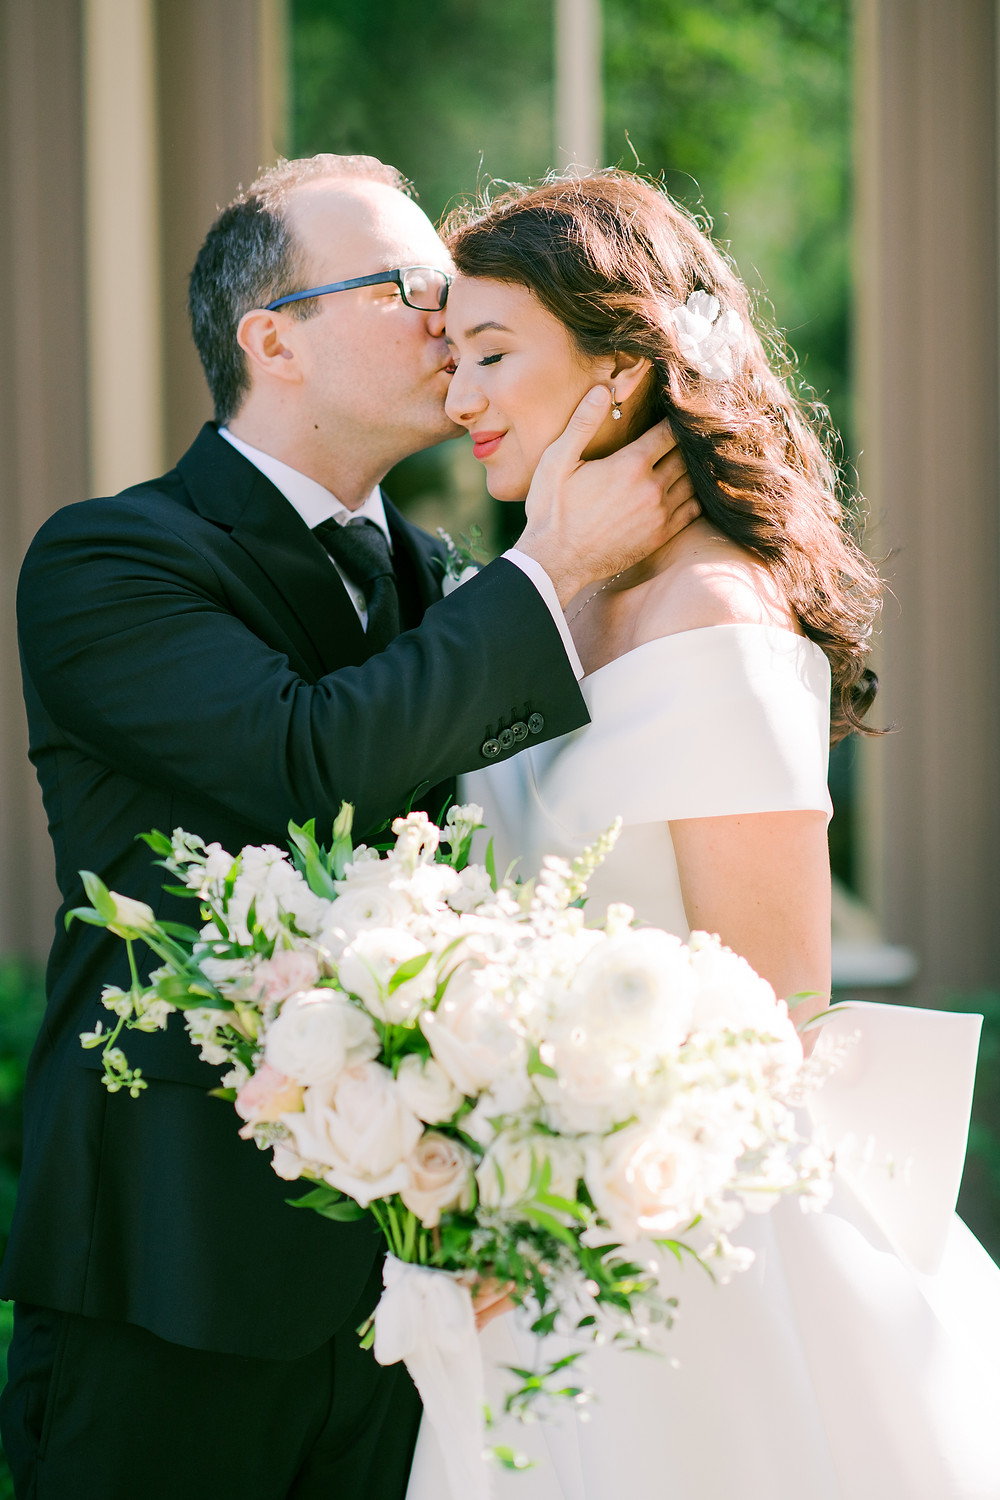 Groom kissing his bride's cheek in front of the Baughman Center in Gainesville, Florida on their wedding day during a first look.